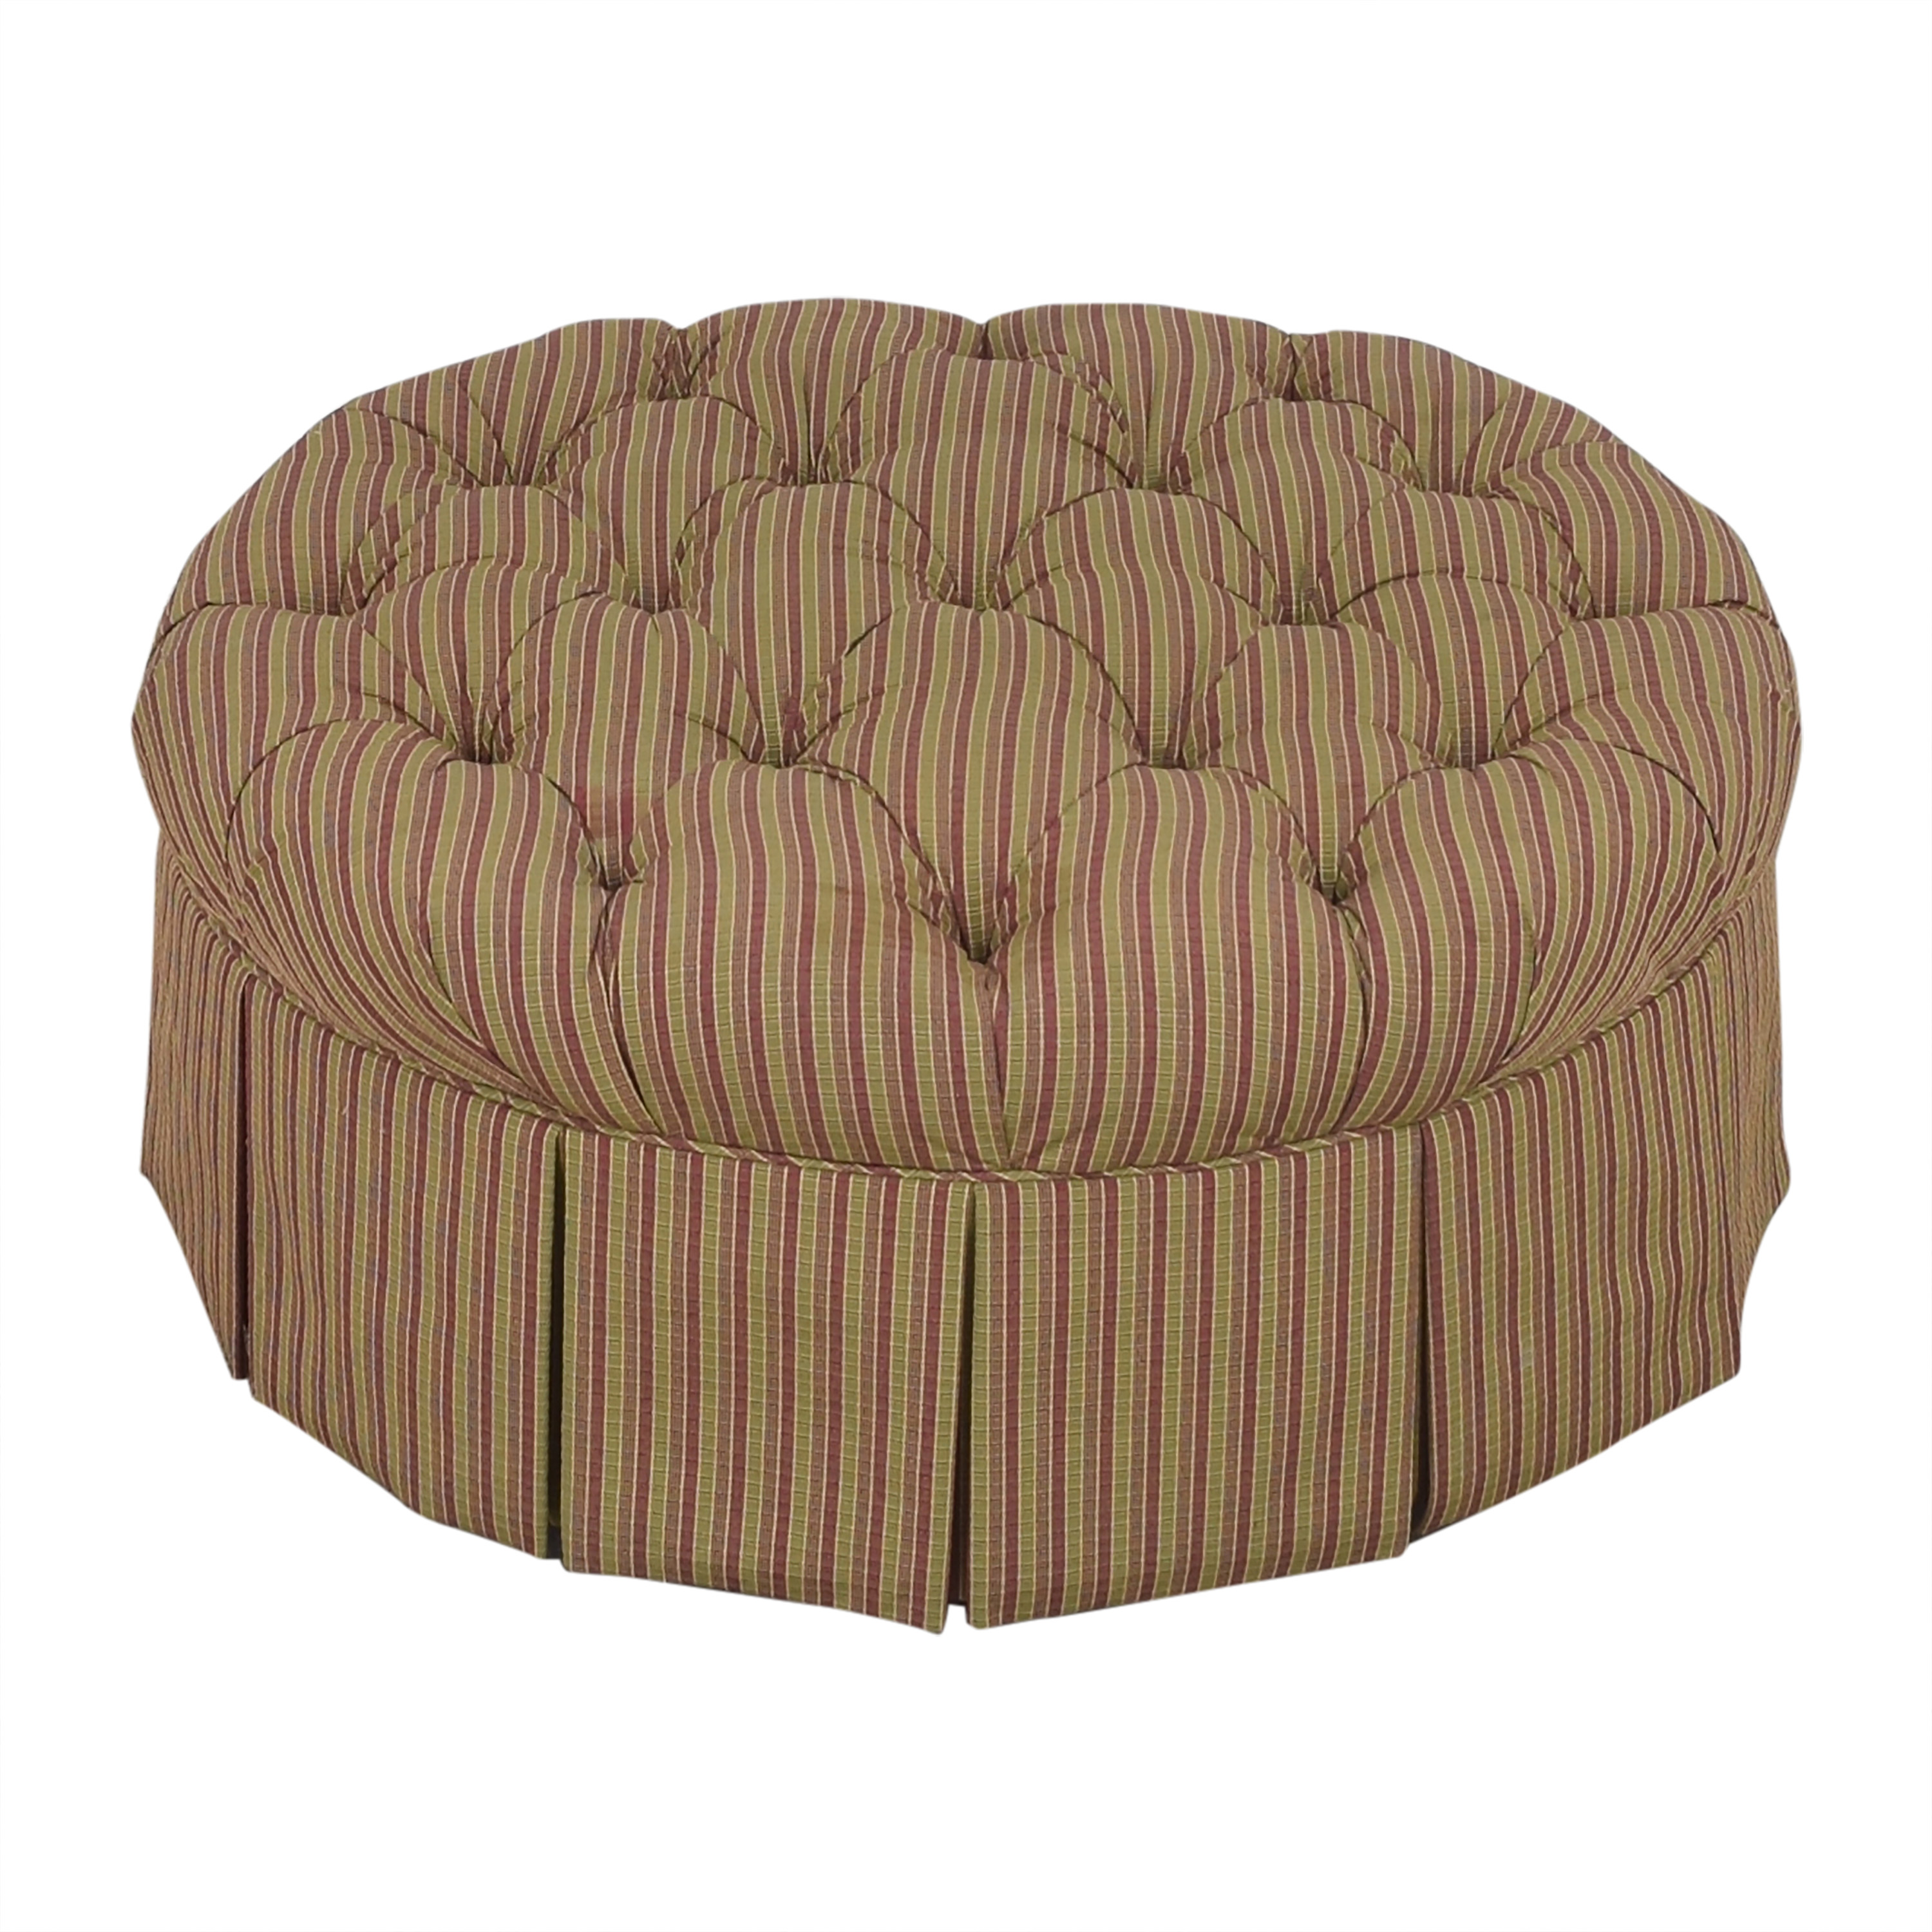 Domain Home Domain Home Round Tufted Ottoman